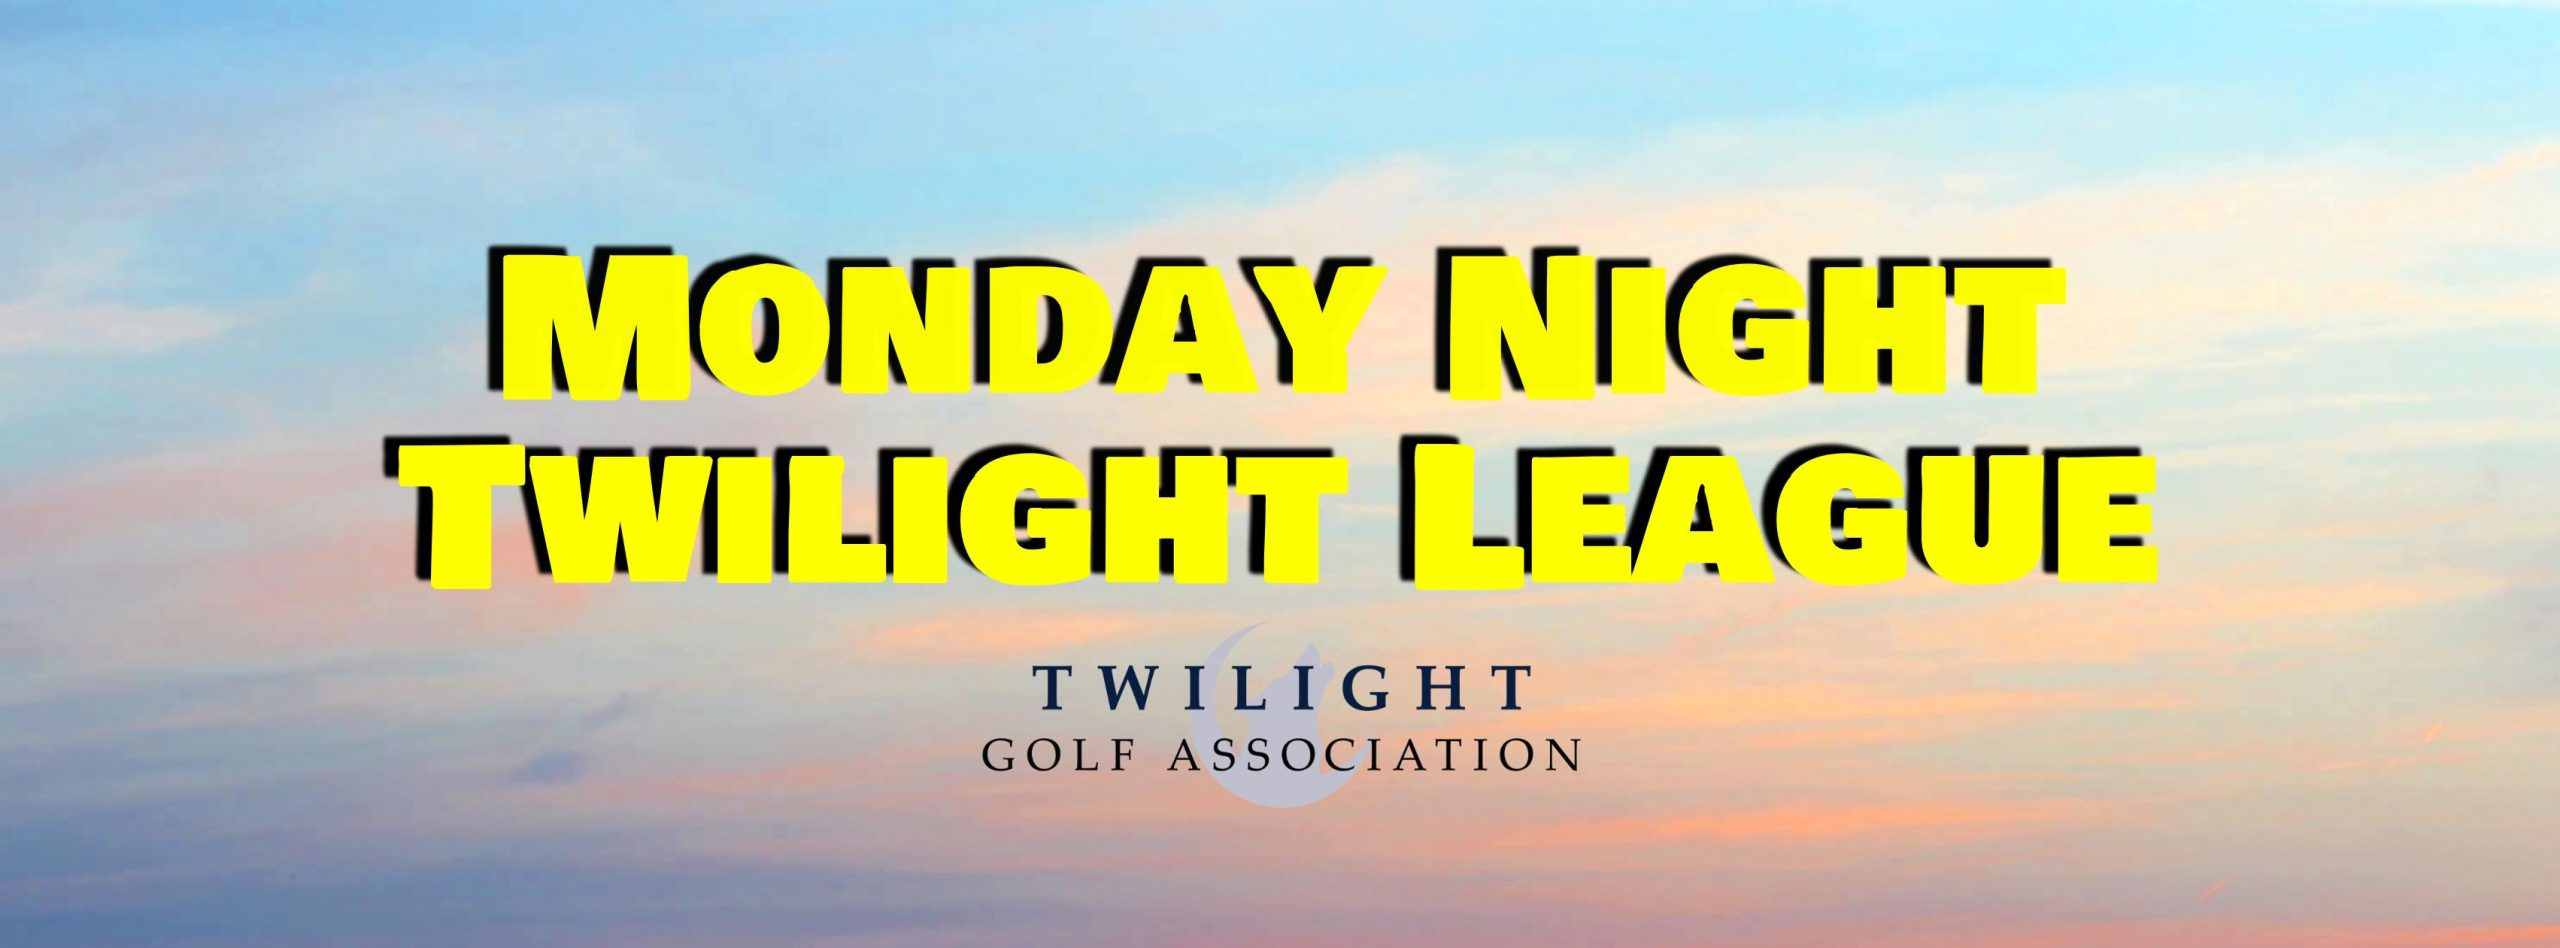 Monday Night Twilight League at Grand View Golf Club